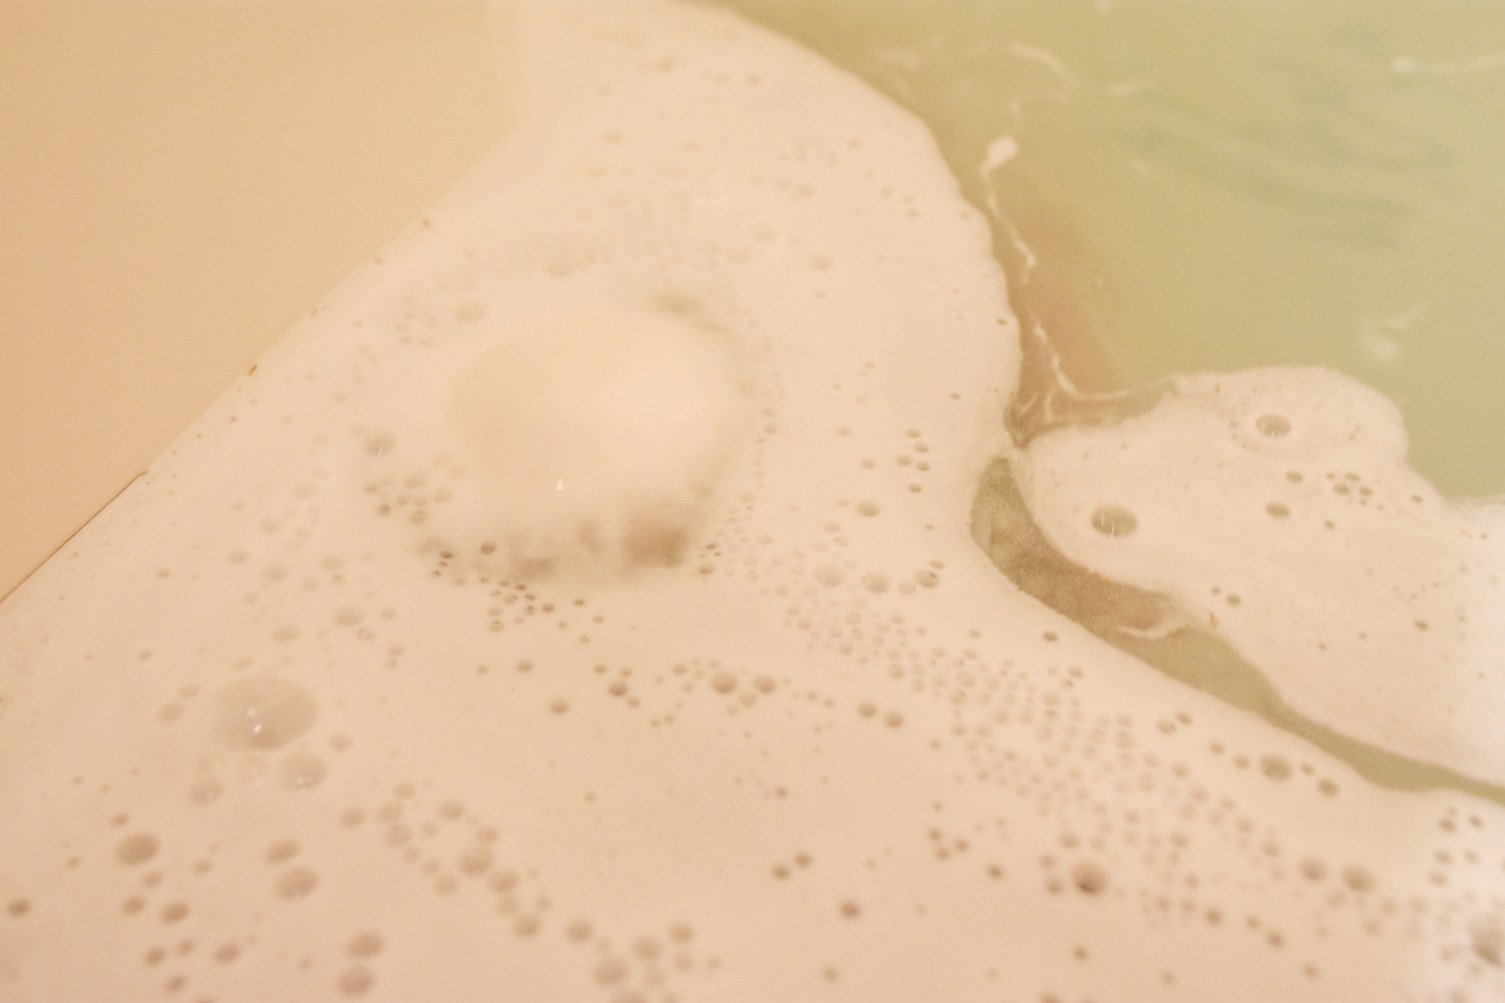 Lush Cosmetics So White Bath Bomb